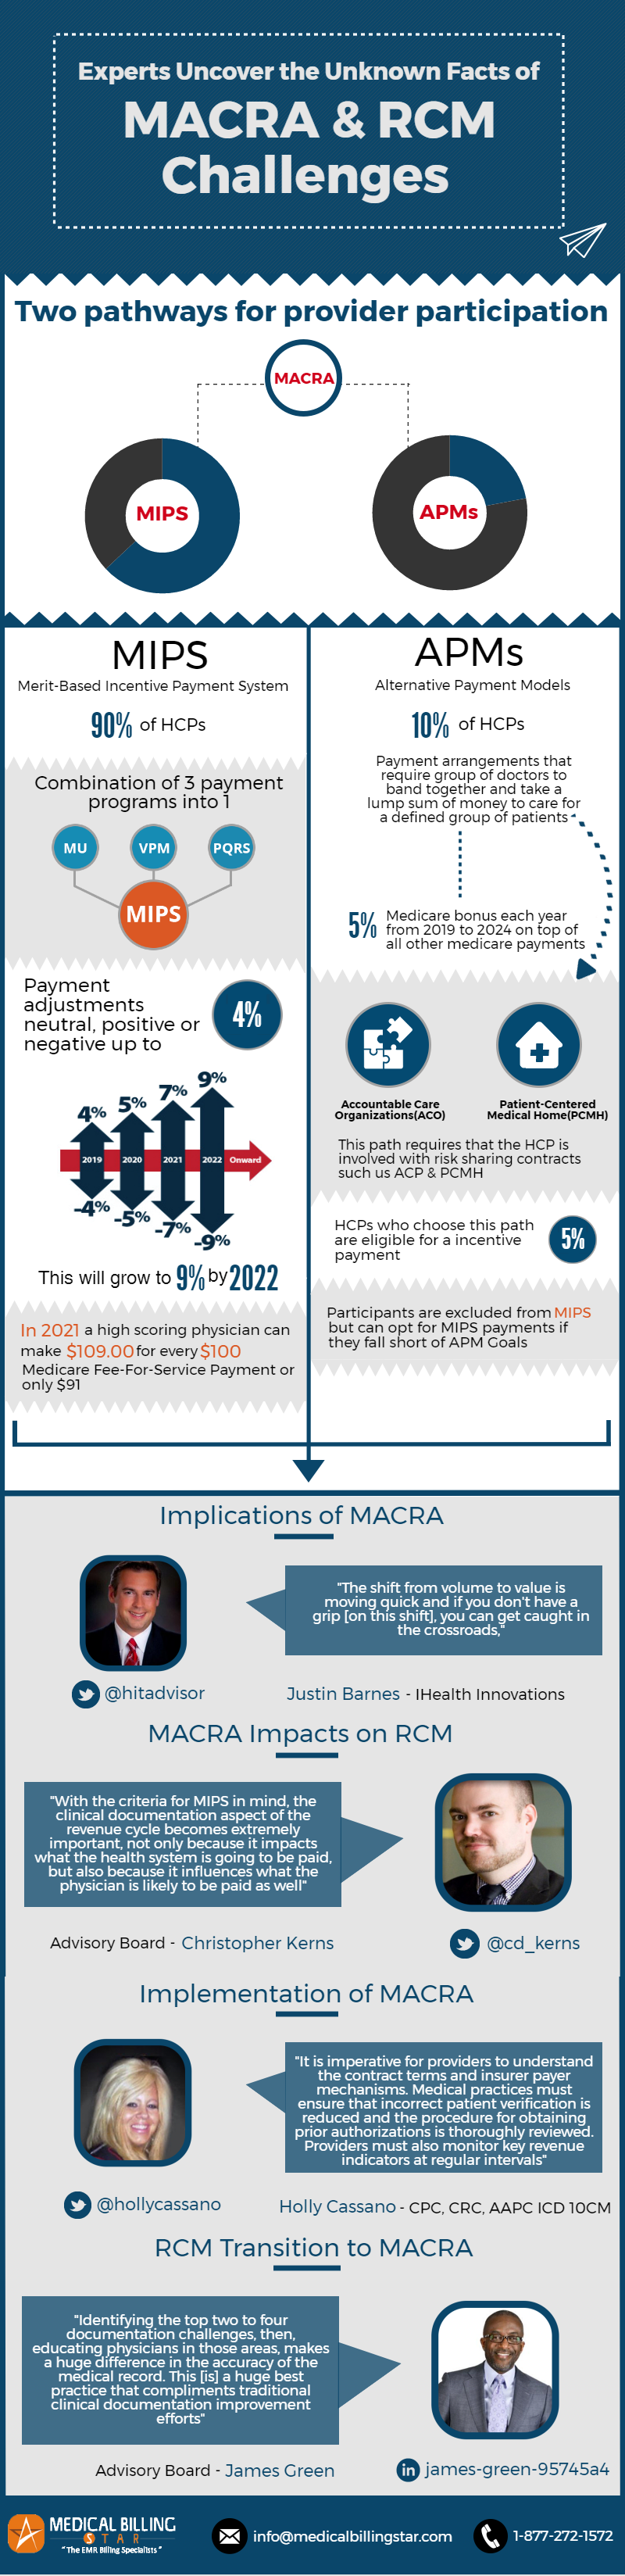 Facts-MACRA-RCM-Challenges